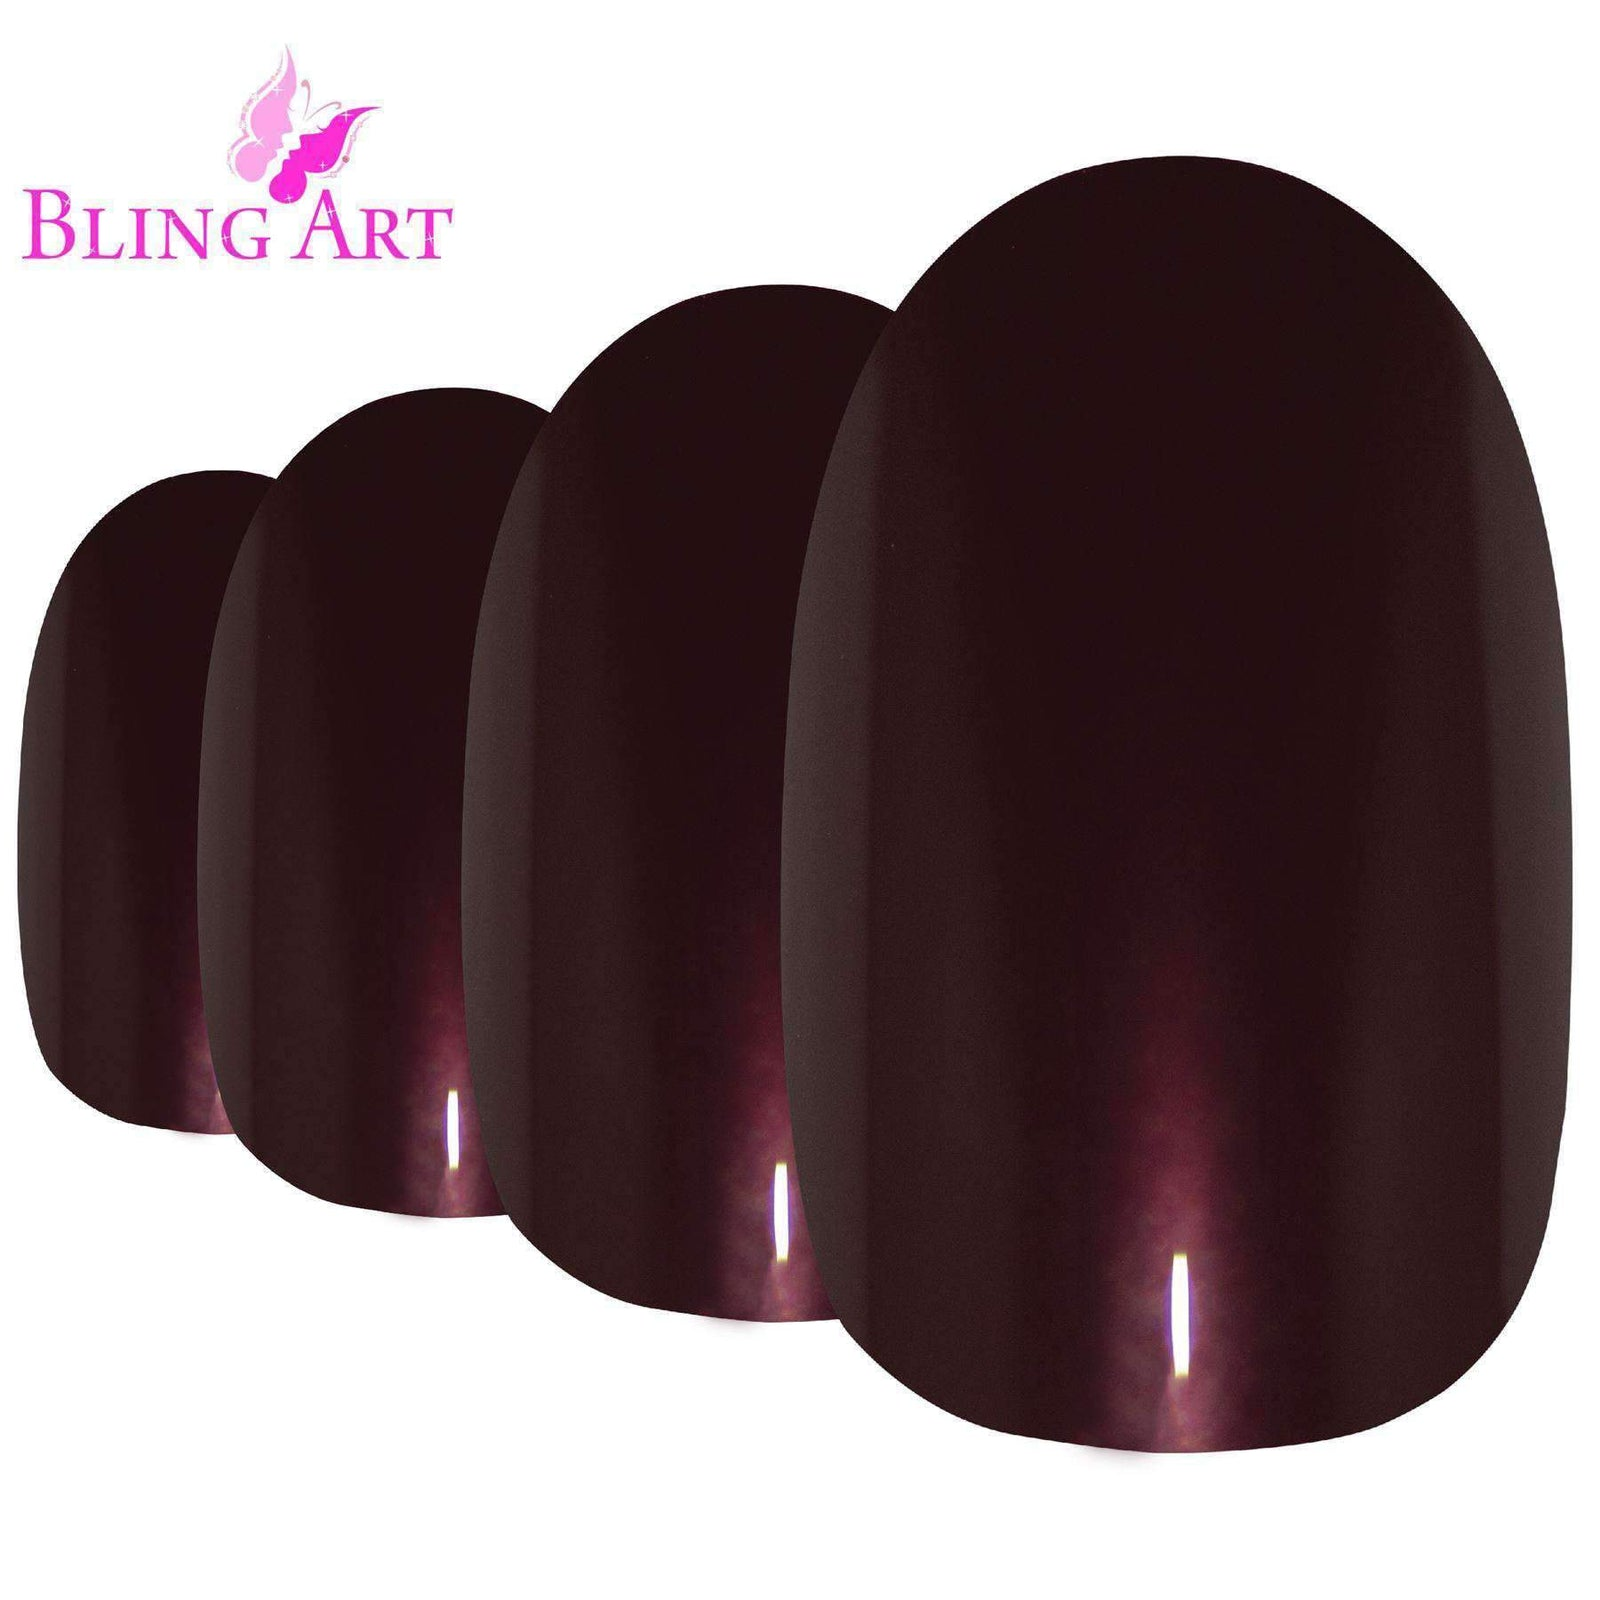 False Nails by Bling Art Brown Glitter Oval Medium Fake Acrylic 24